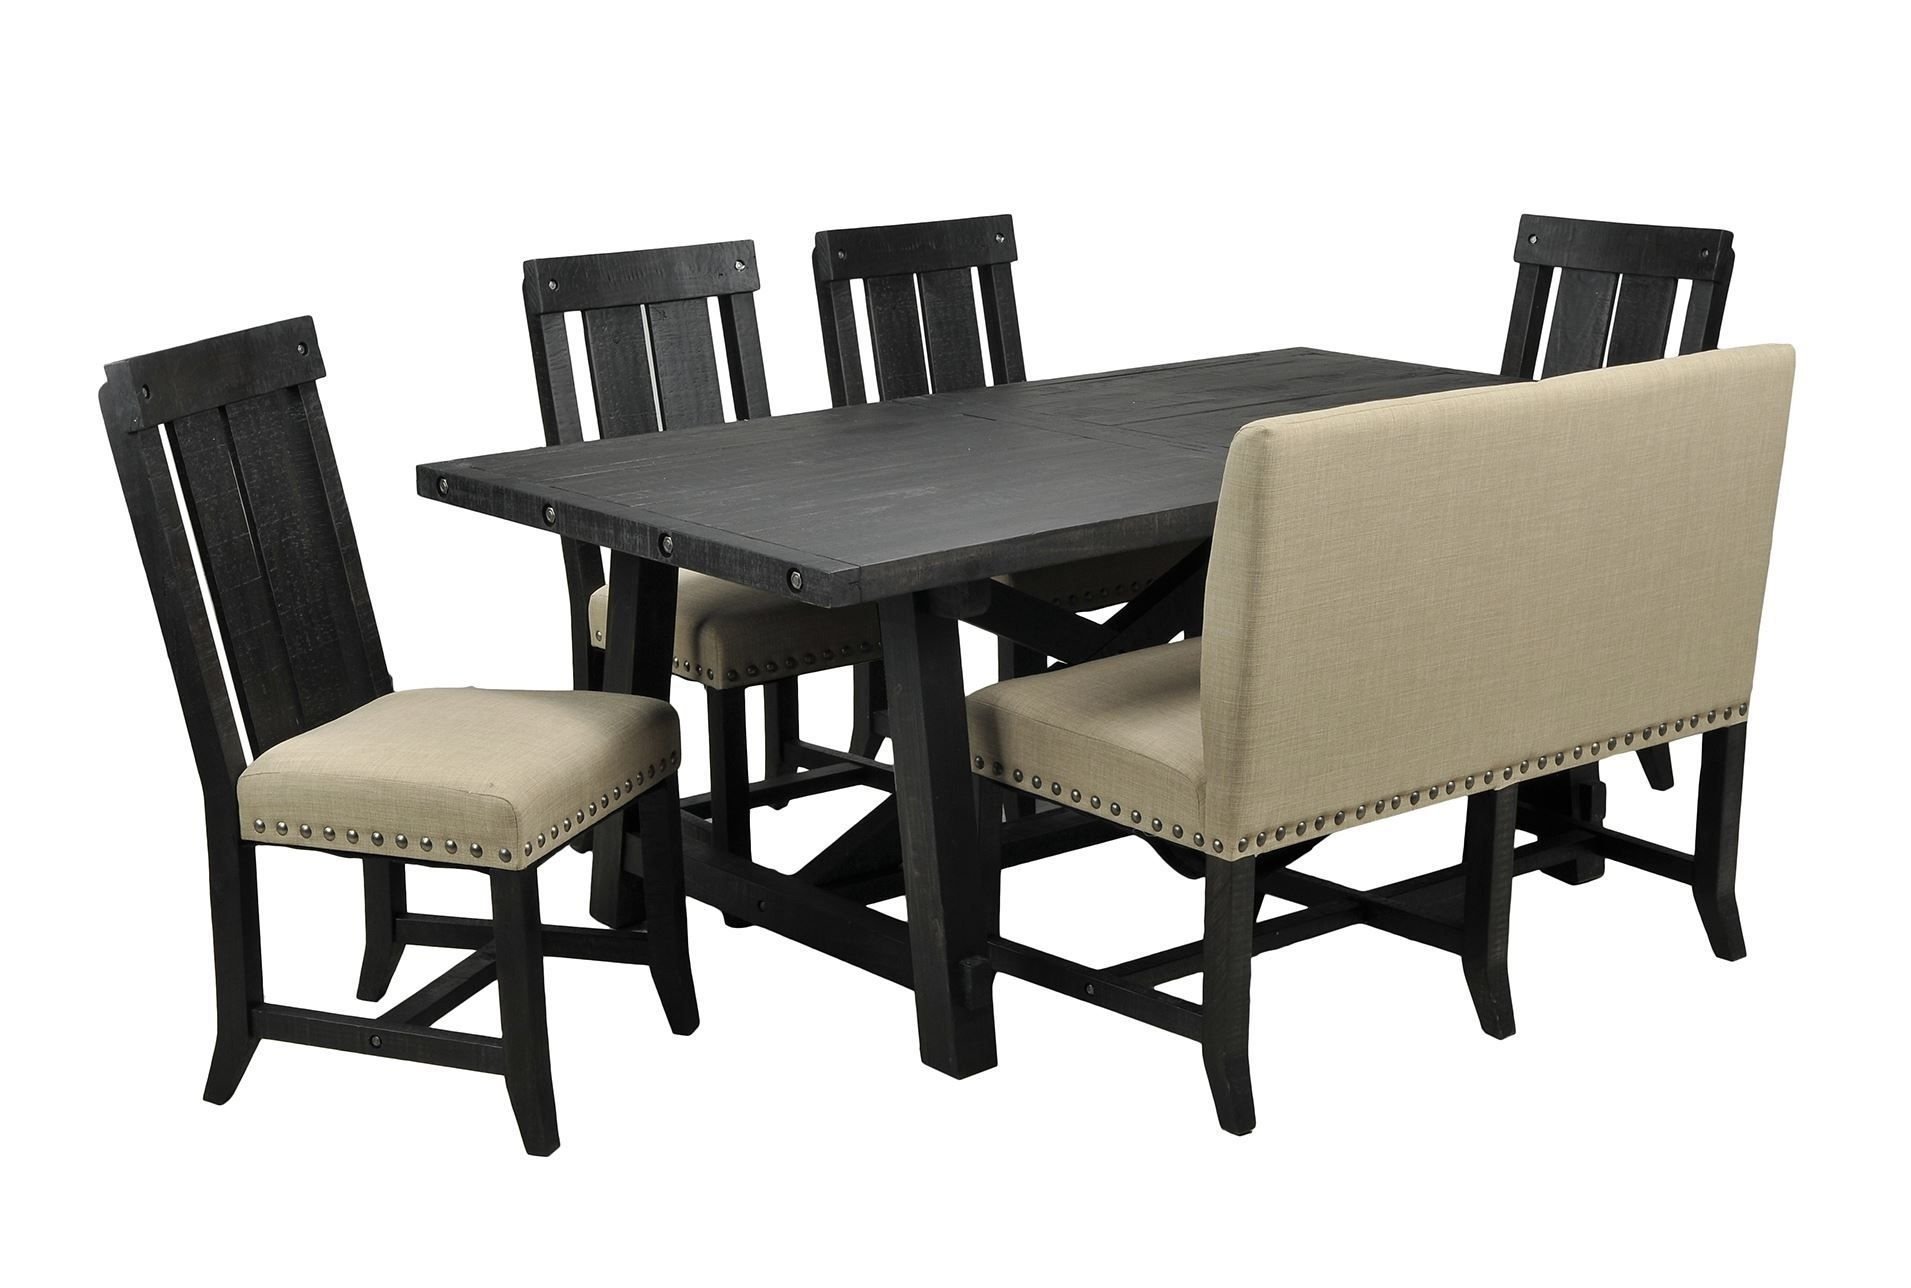 Jaxon 6 Piece Rectangle Dining Set W/bench & Wood Chairs, Café Regarding Latest Jaxon 7 Piece Rectangle Dining Sets With Upholstered Chairs (Image 7 of 20)